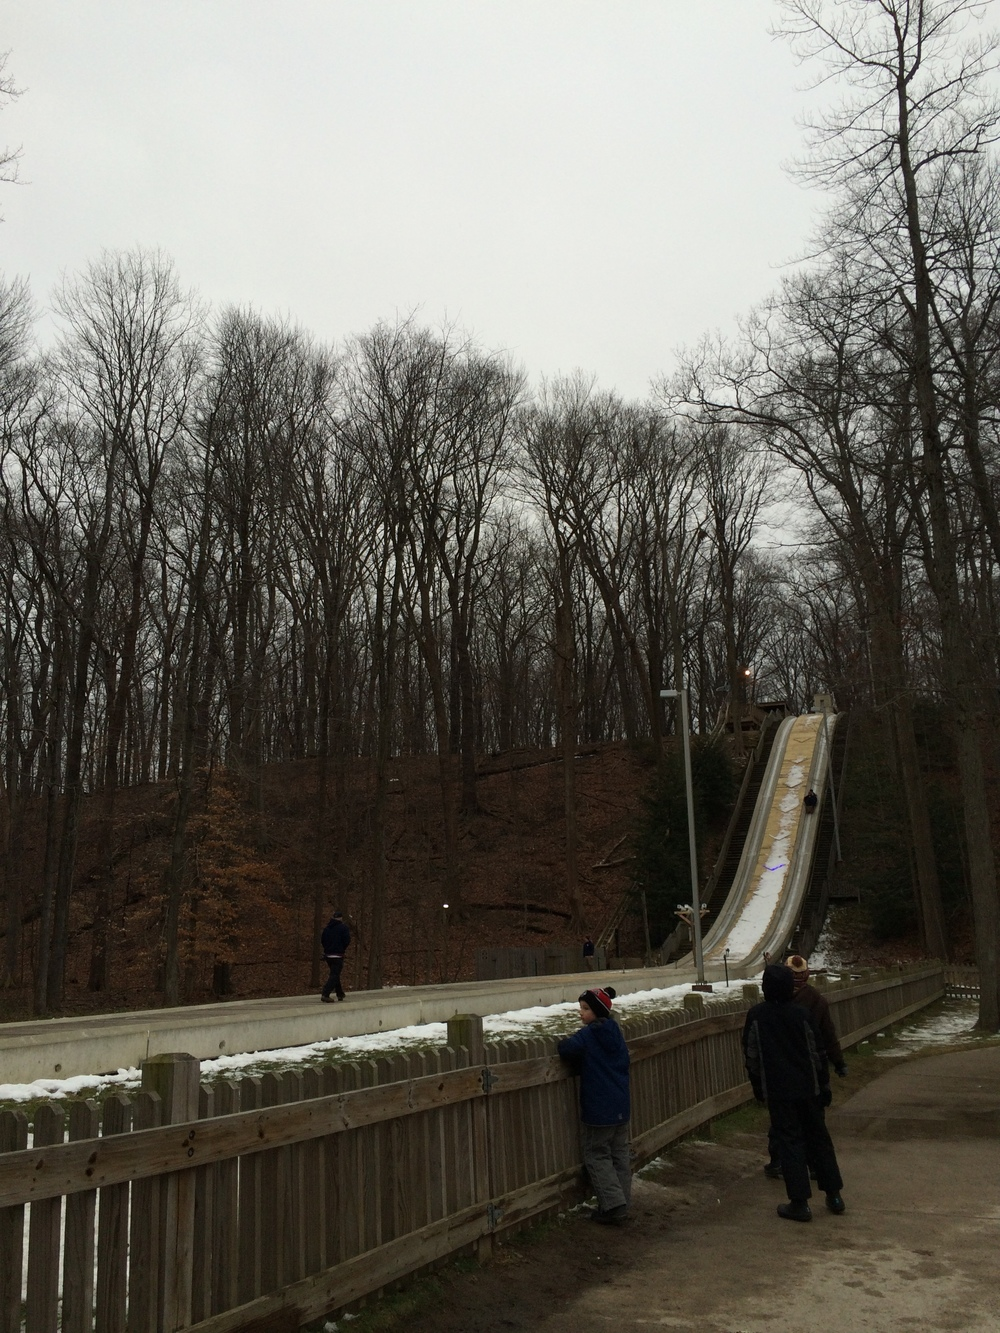 We went tobogganing and it was crazy and fun and scary all at once.